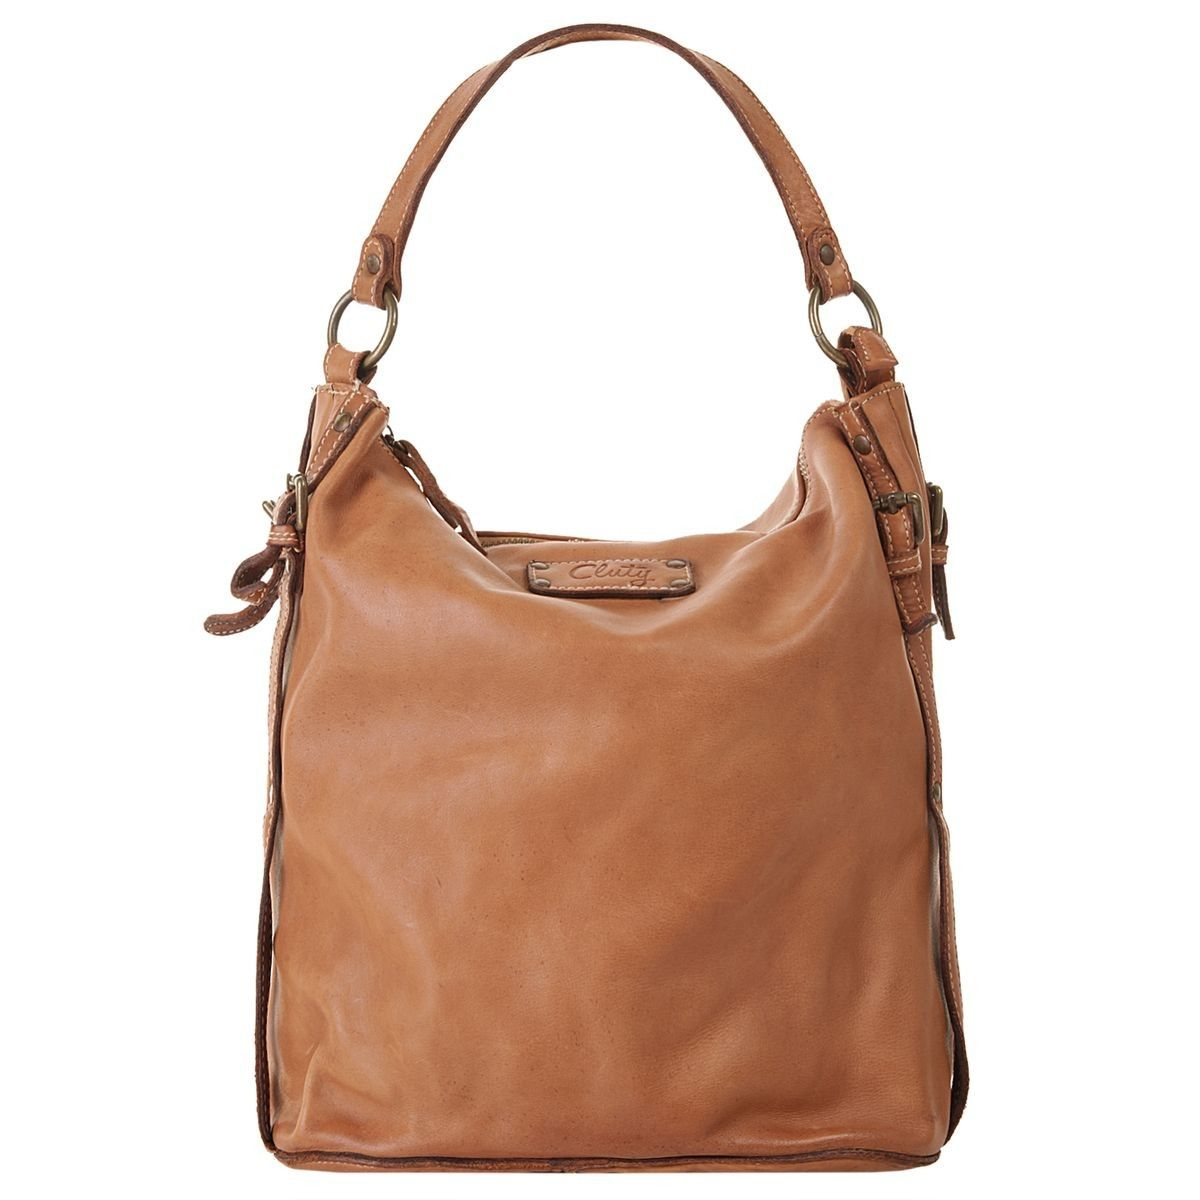 Sac A Bandouliere Nel 2019 Products Sac Sac Bandouliere Cuir E Bandouliere